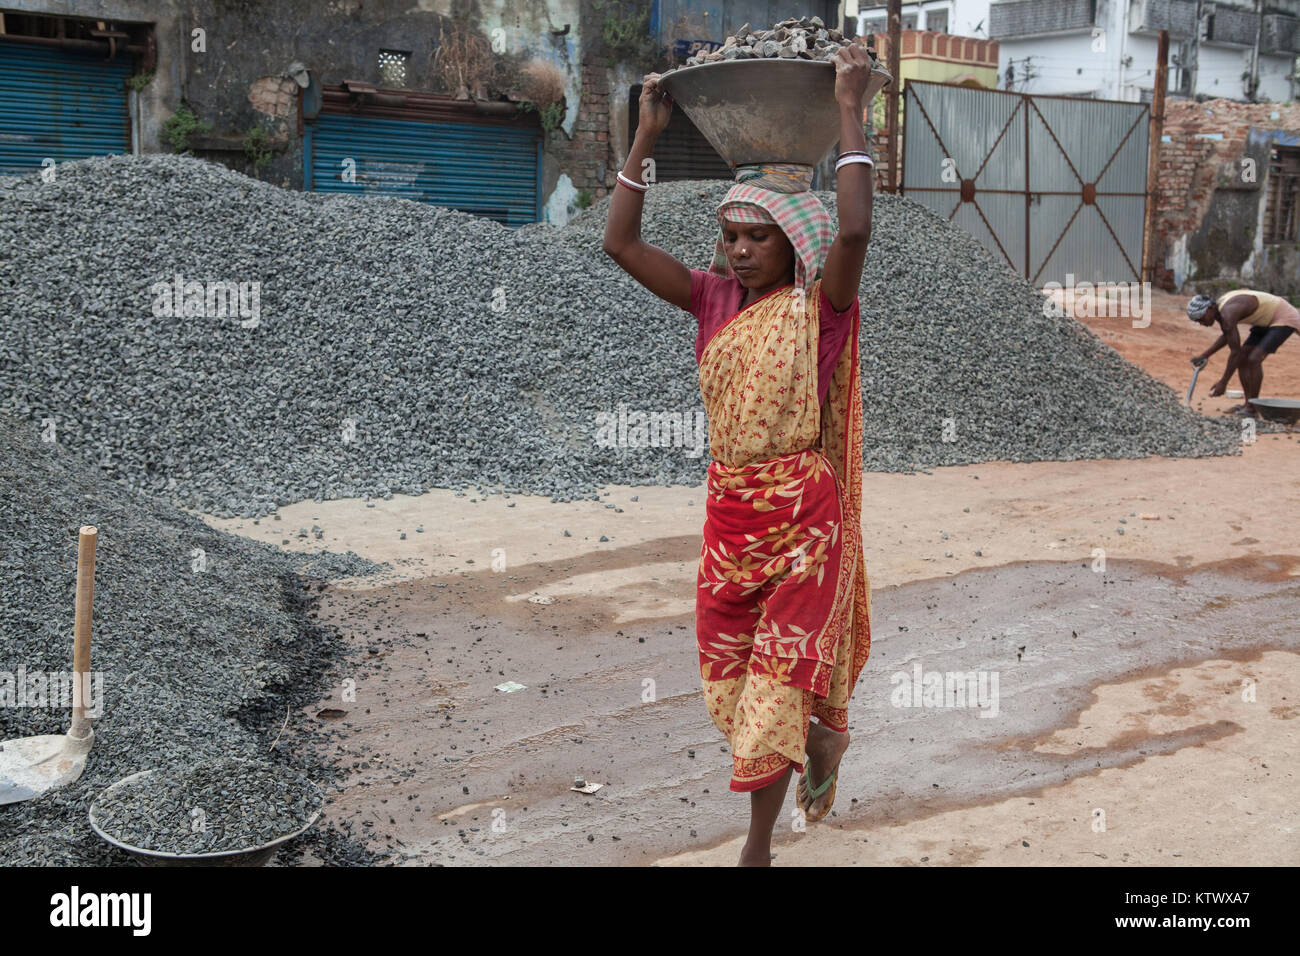 A female labourer carries a tray of stone chippings through a building site in Asansol, India - Stock Image